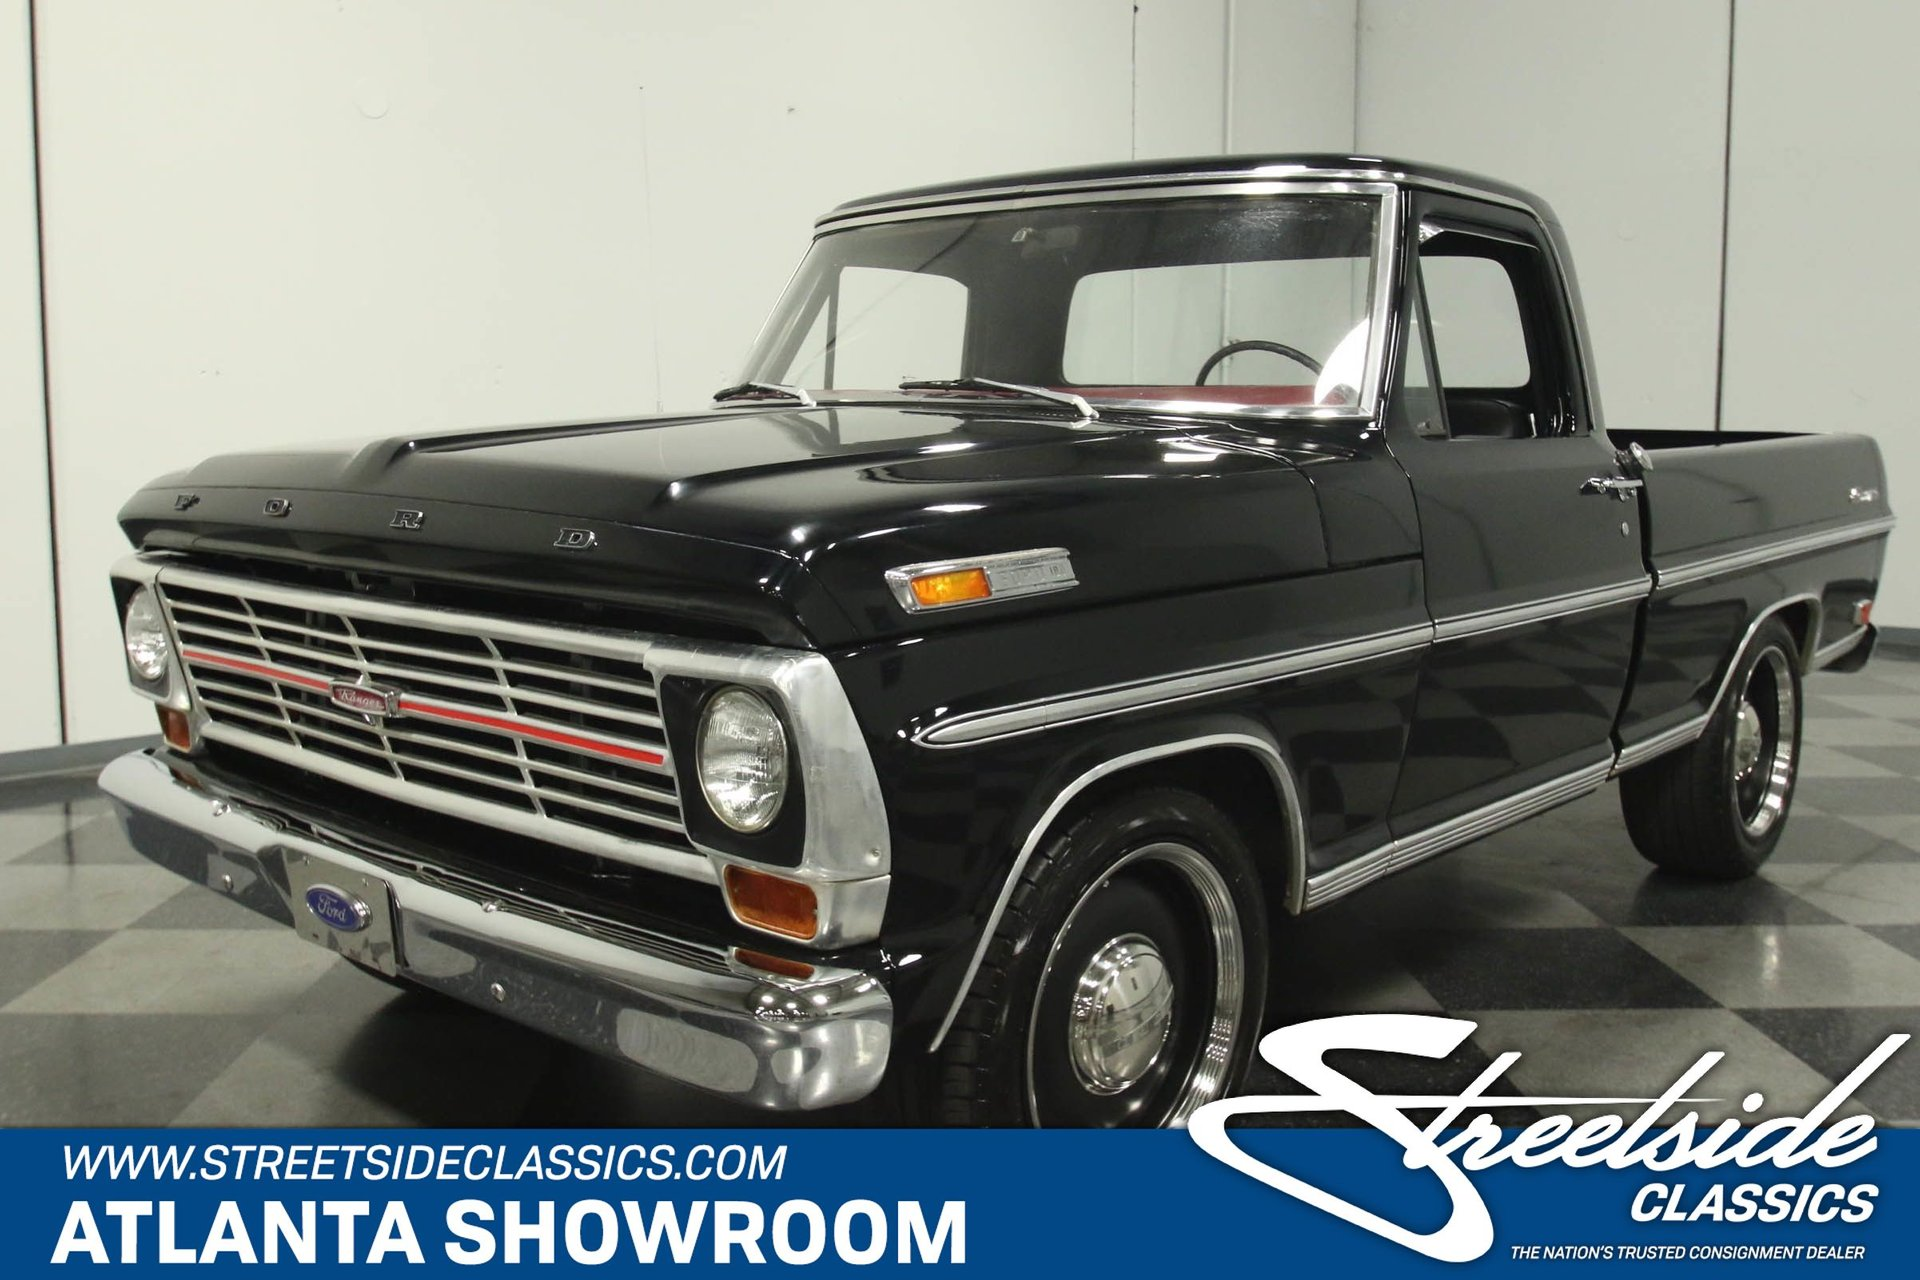 1969 Ford F 100 Classic Cars For Sale Streetside Classics The Nation S 1 Consignment Dealer